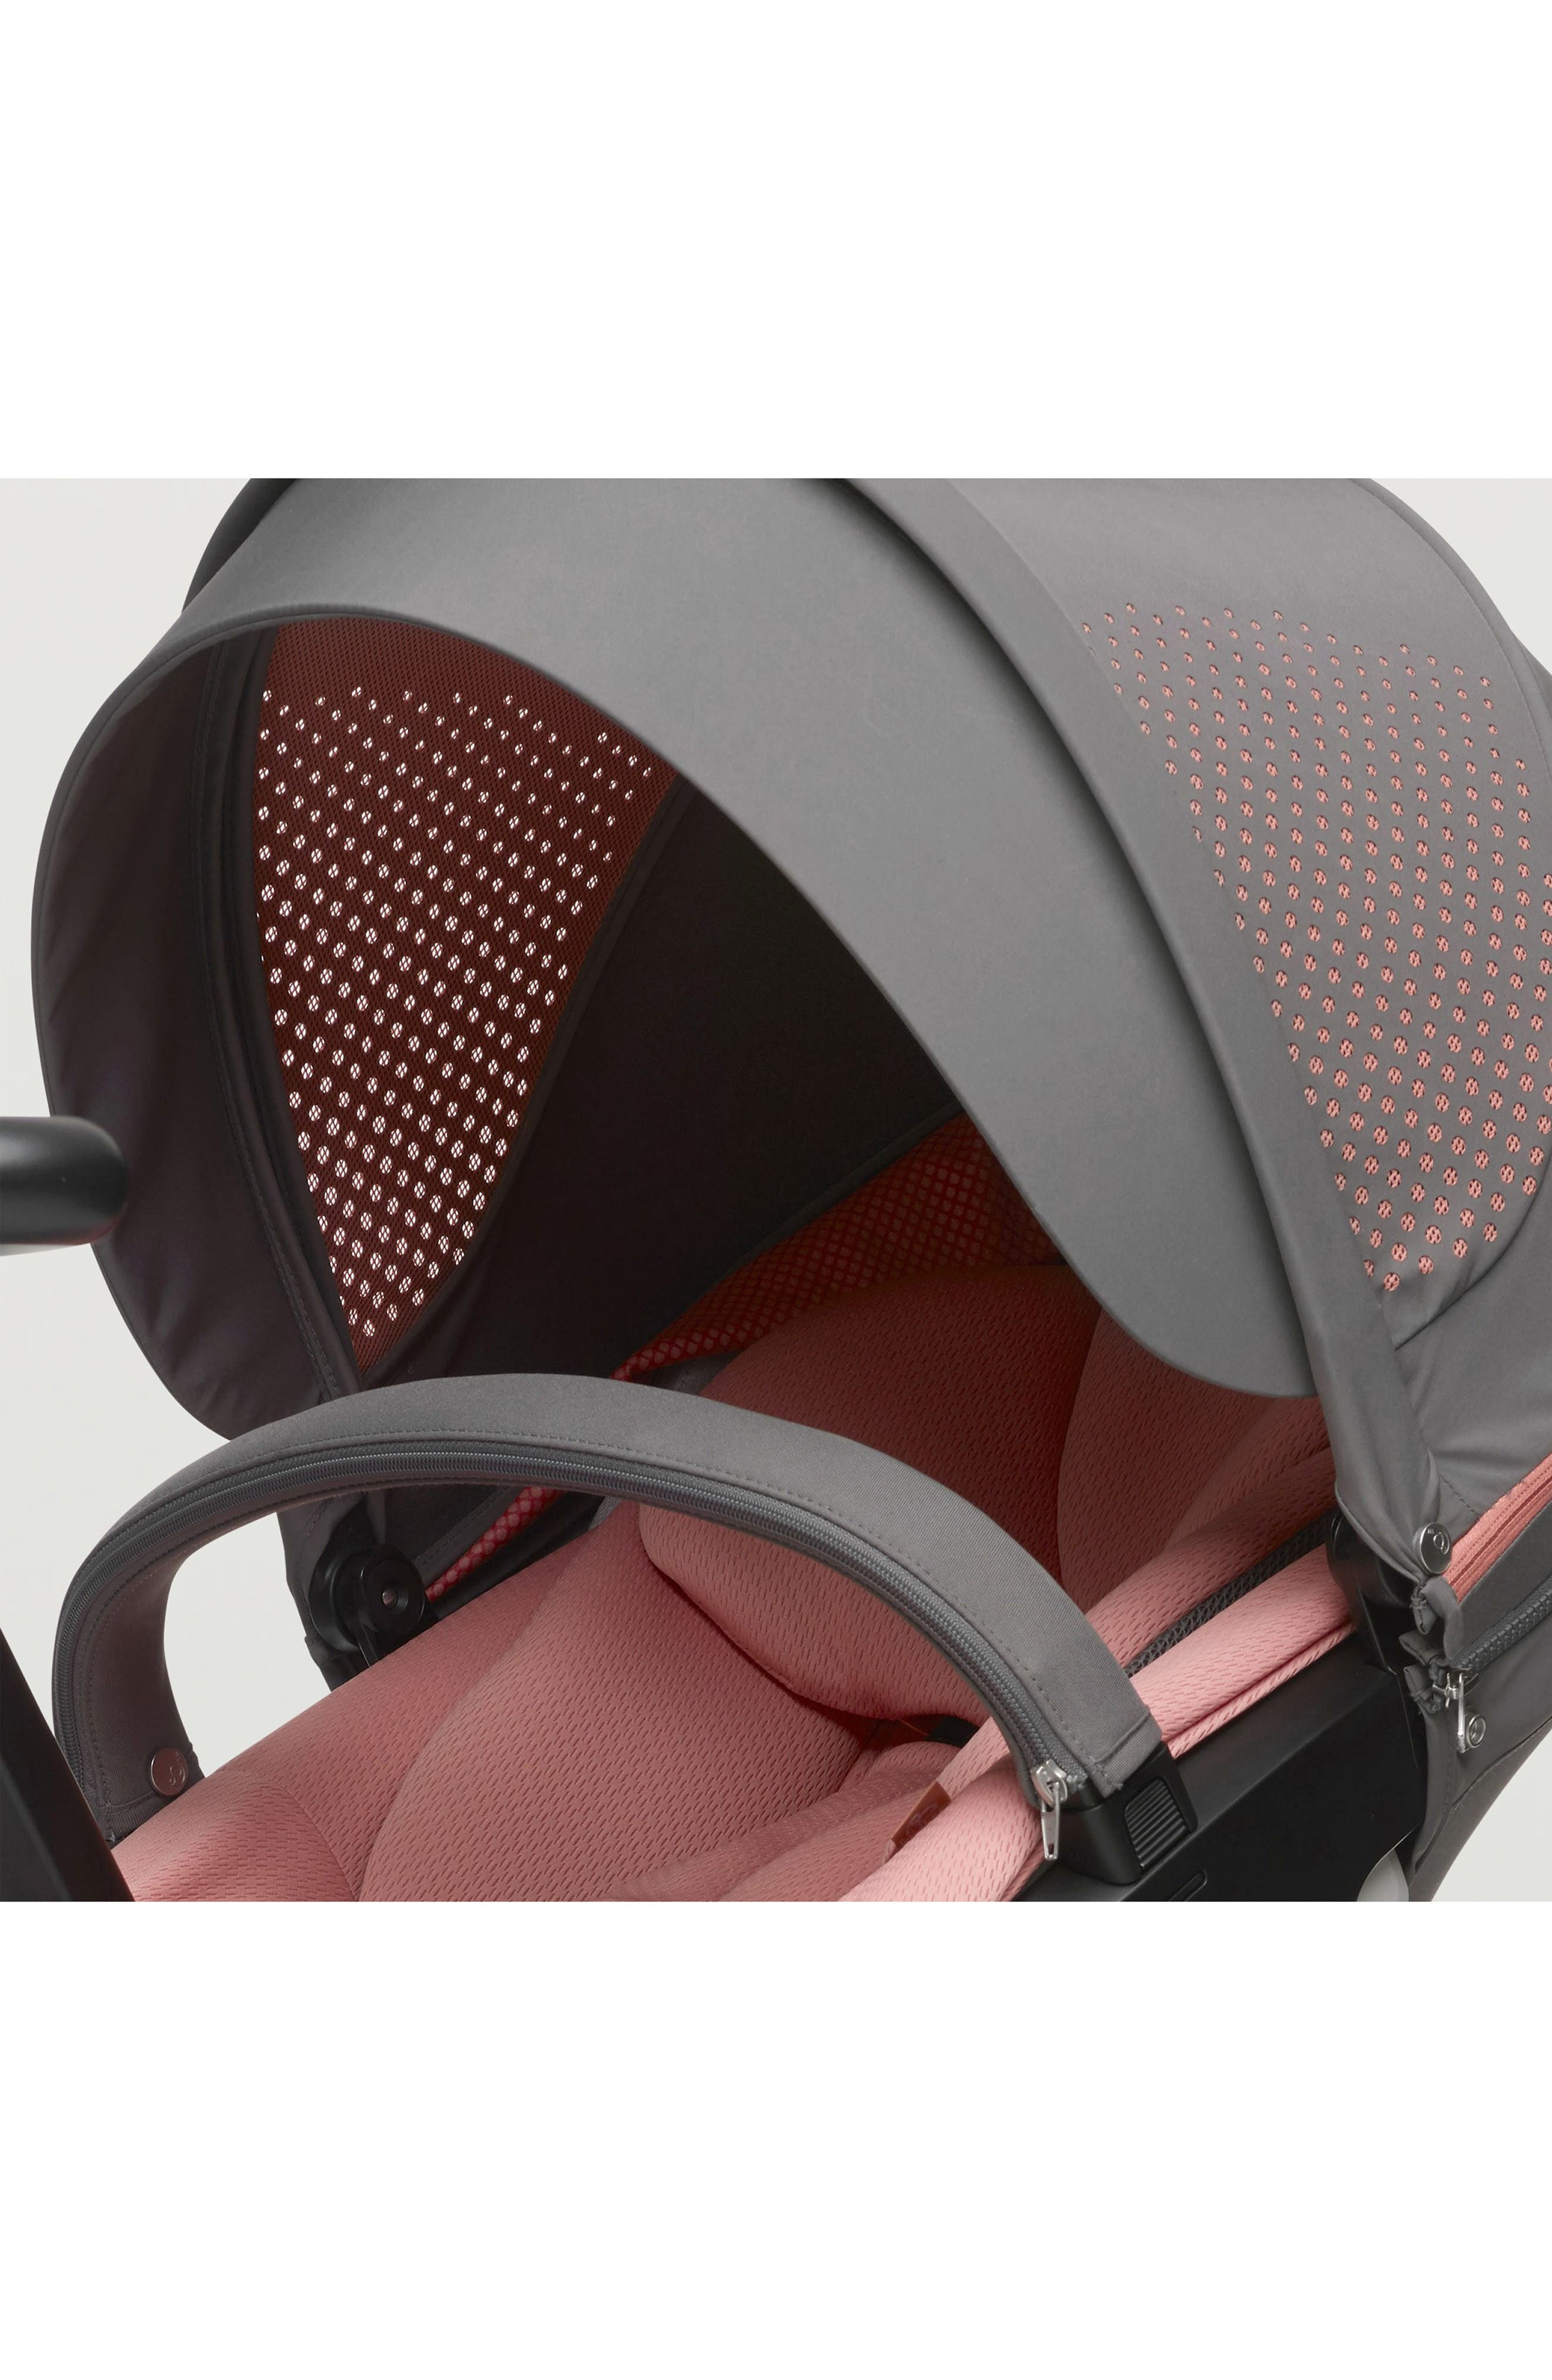 Xplory<sup>®</sup> V5 Coral Athleisure Stroller,                             Alternate thumbnail 5, color,                             080